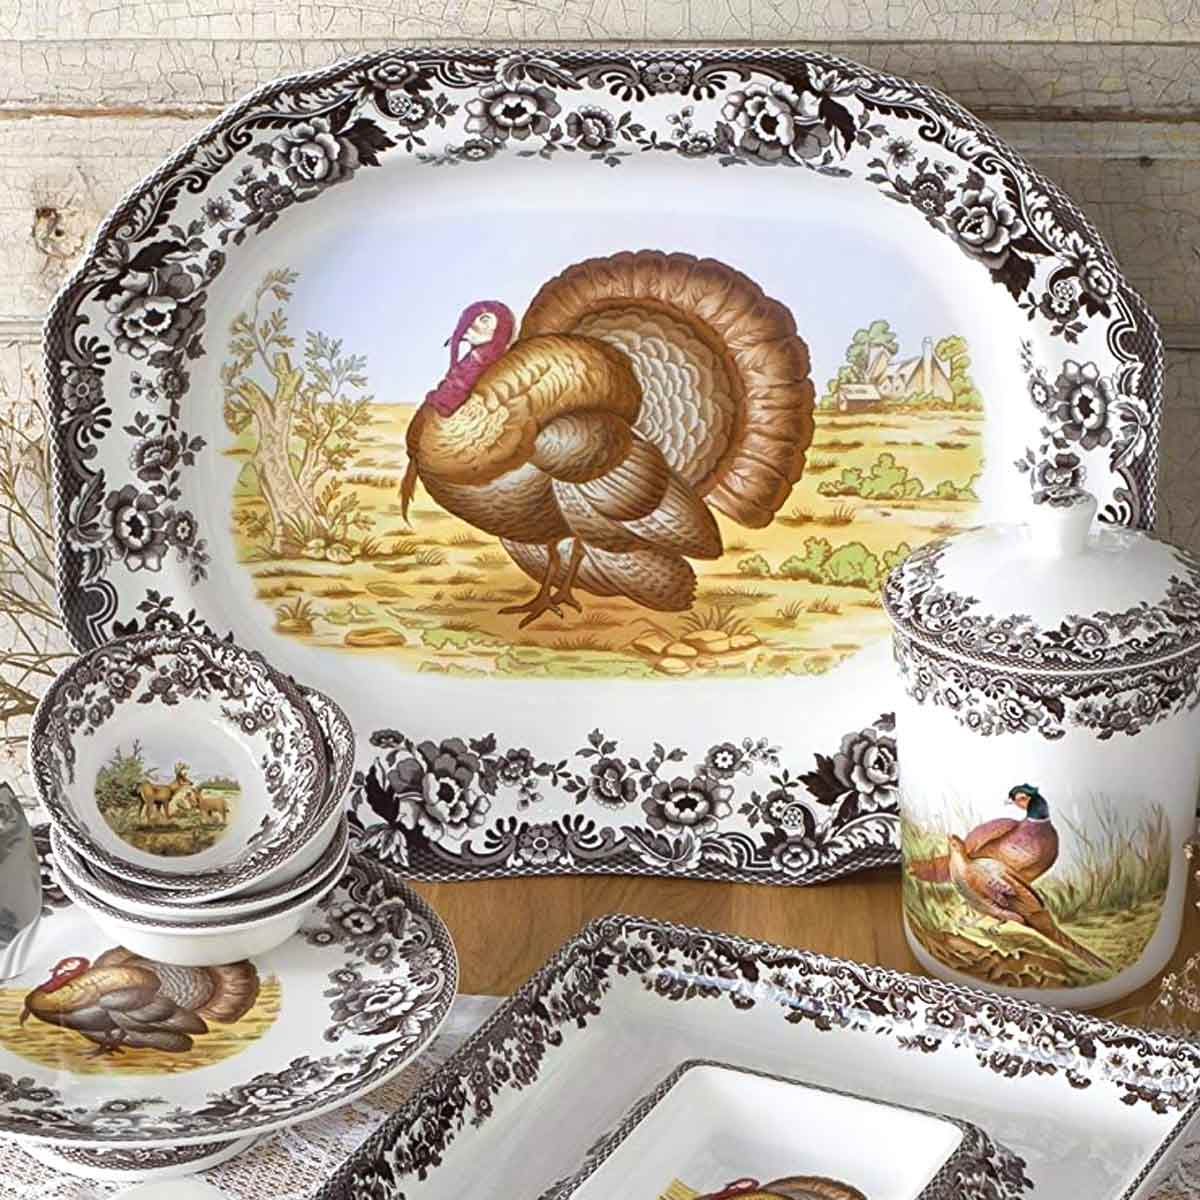 Spode Woodland Turkey Platter on wood table with other pieces.